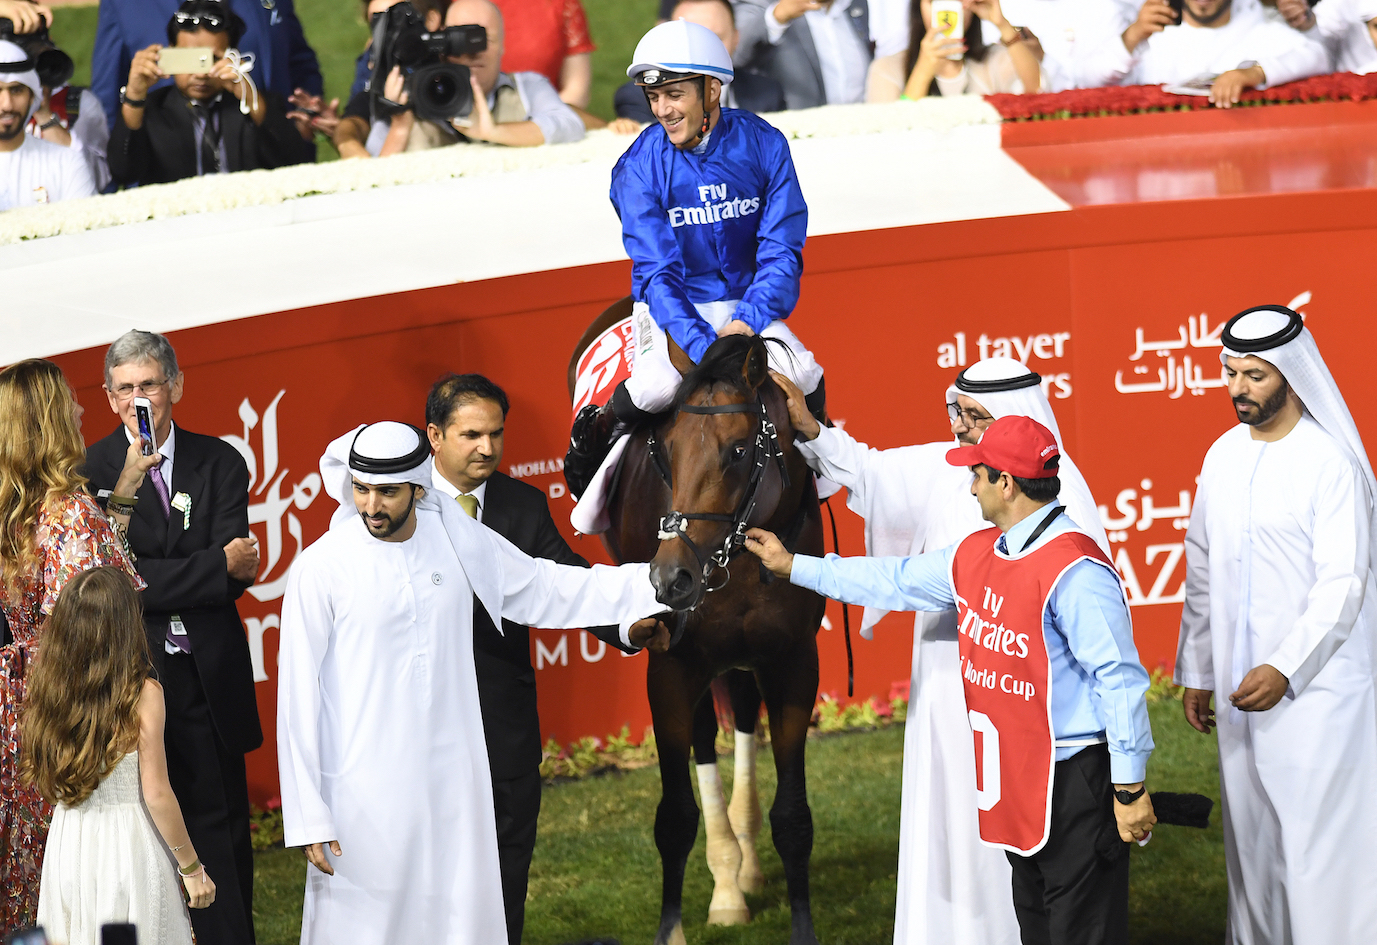 Christophe Soumillon enjoys the moment as Thunder Snow is feted in the winners' enclosure after the race. Saeed Bin Suroor is on the right. Photo: Dubai Racing Club